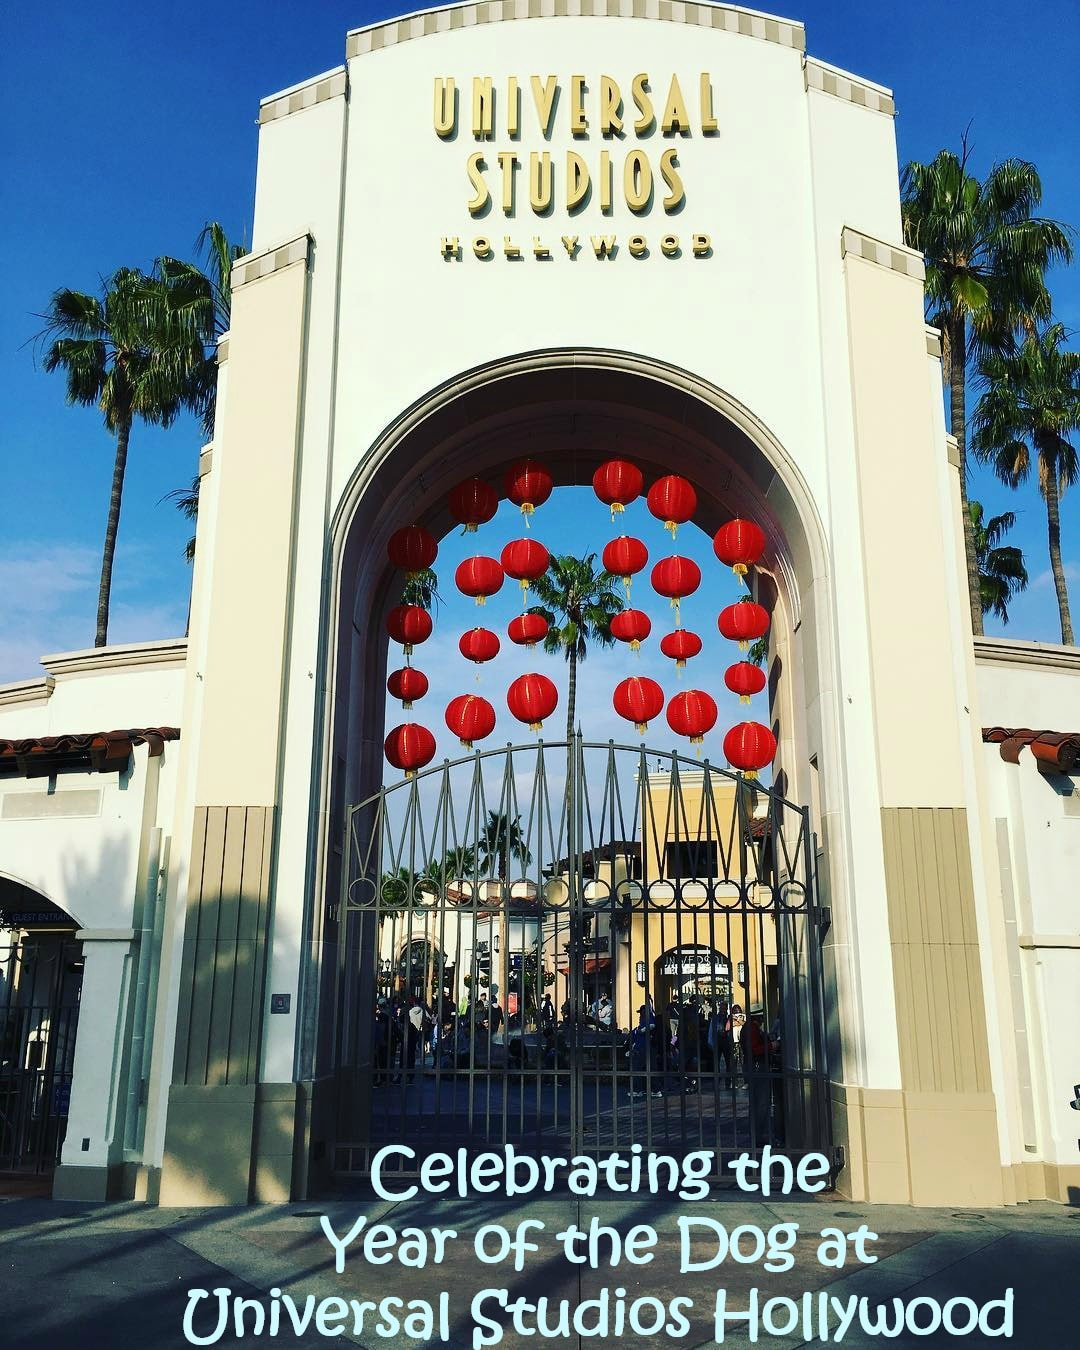 Celebrating the Year of the Dog at Universal Studios Hollywood